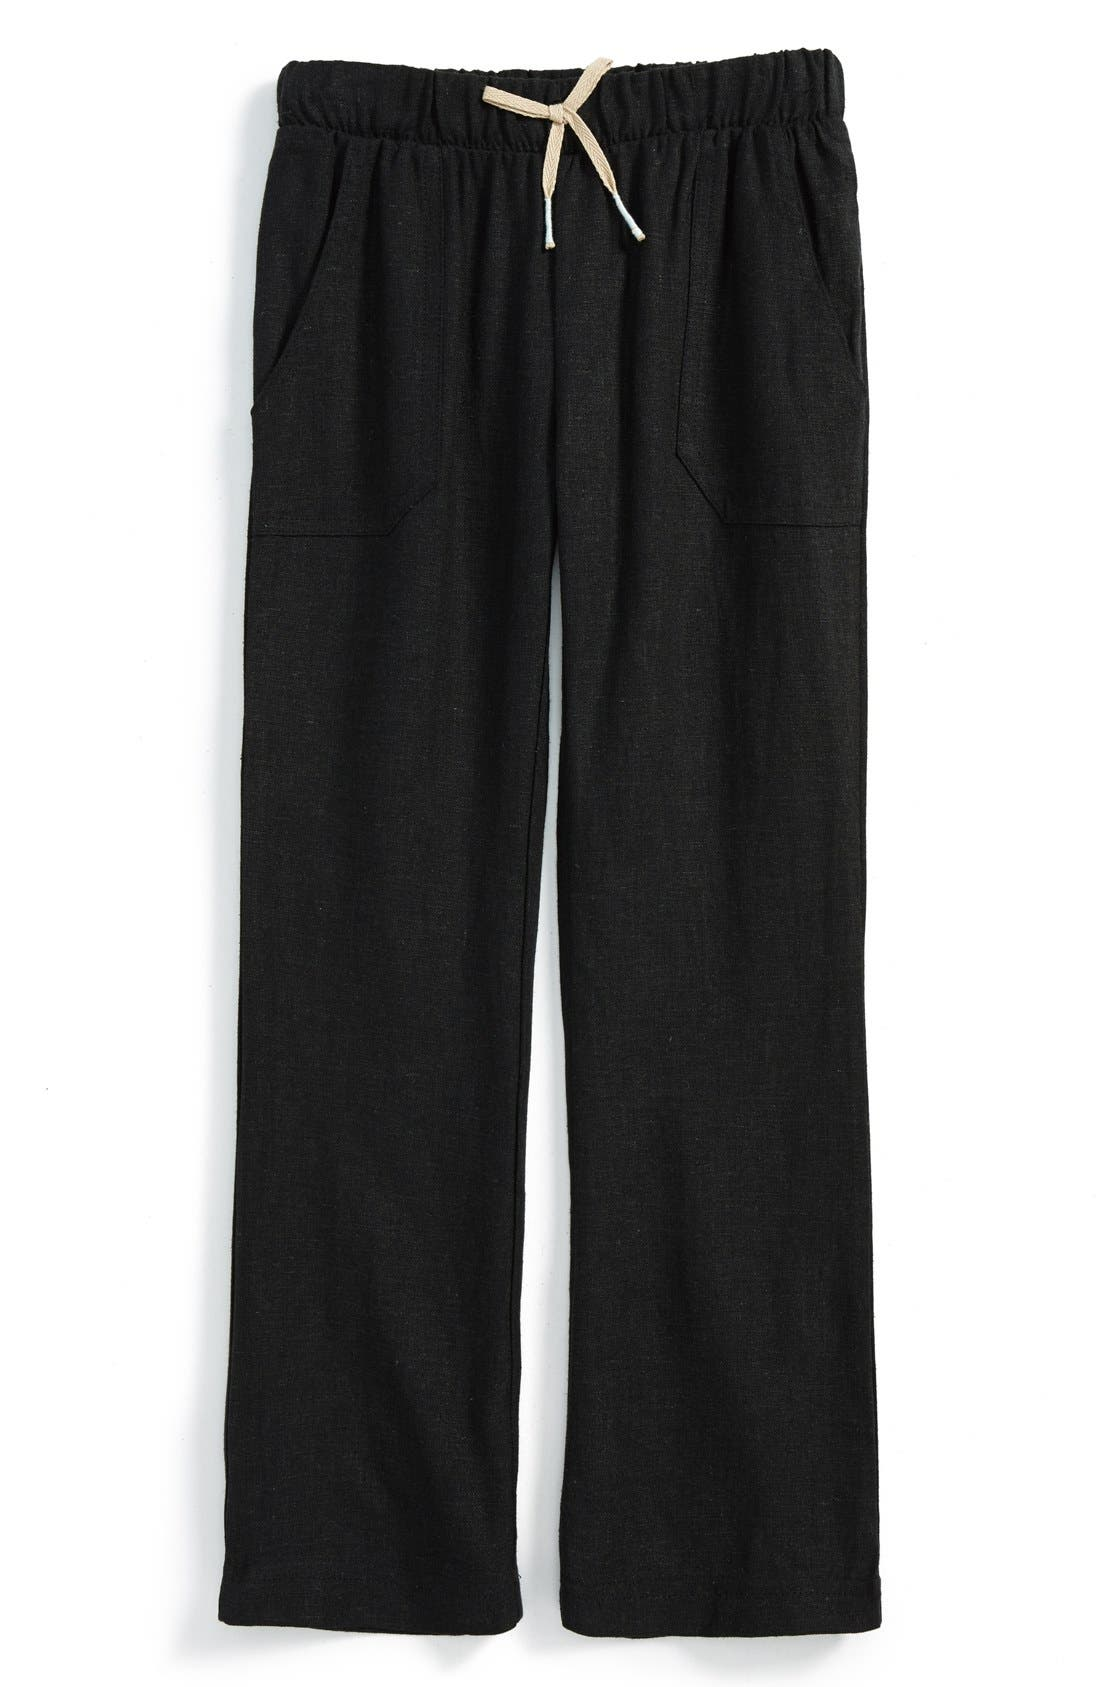 Roxy 'Beach Comber' Lounge Pants (Big Girls)